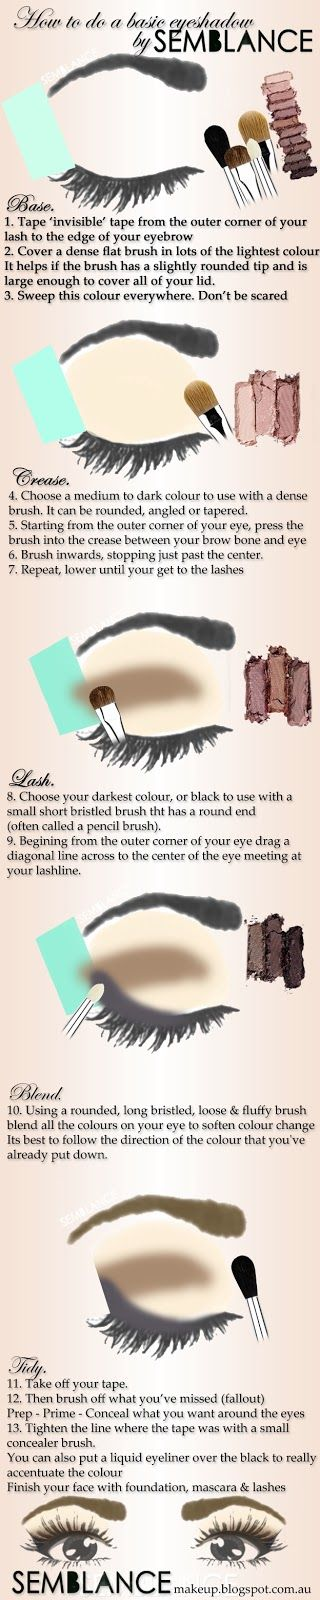 How to do your eyes